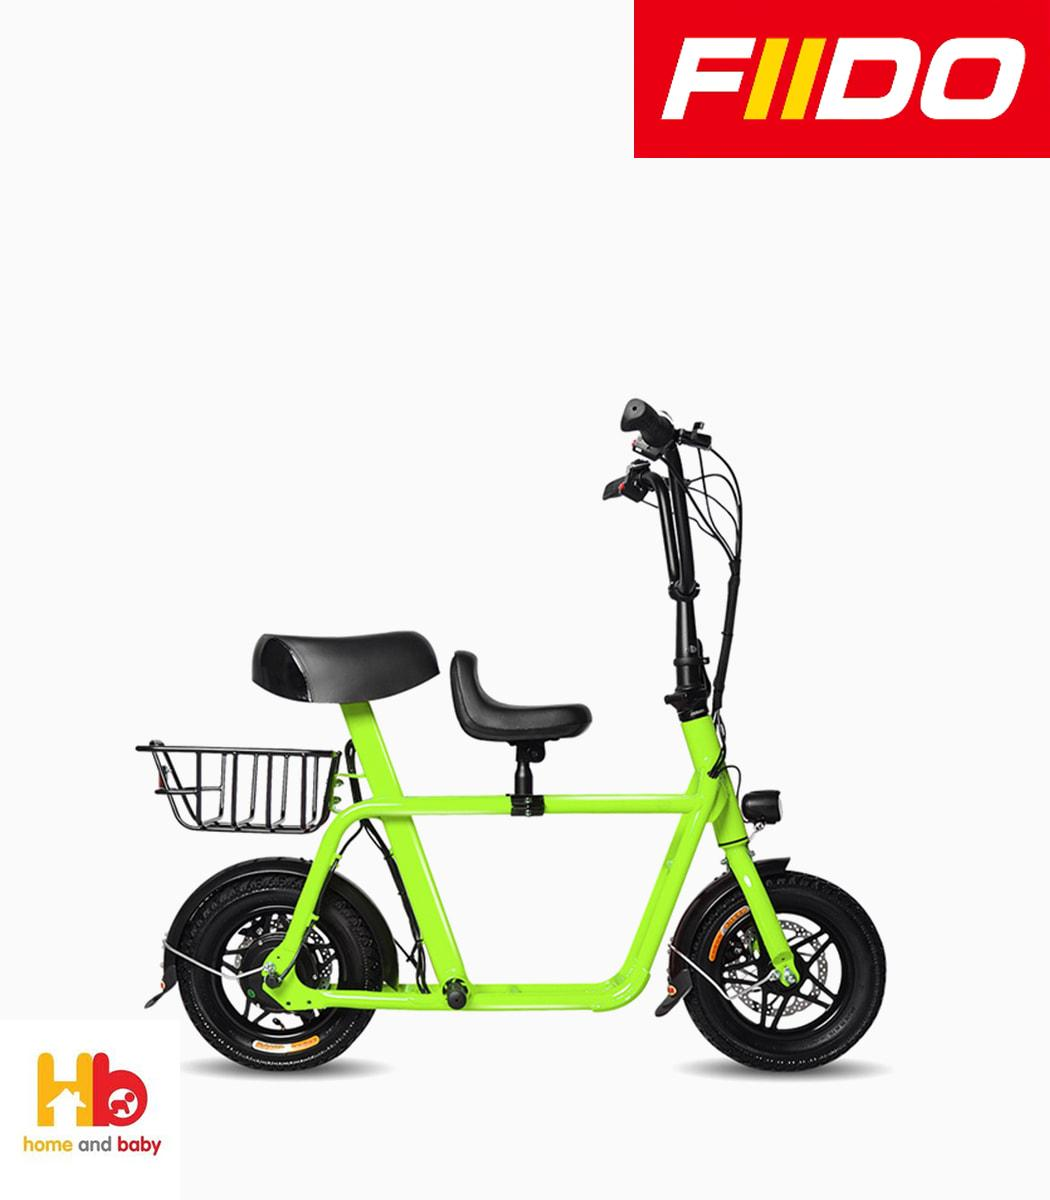 Fiido Seated Electric Scooter By Home And Baby.